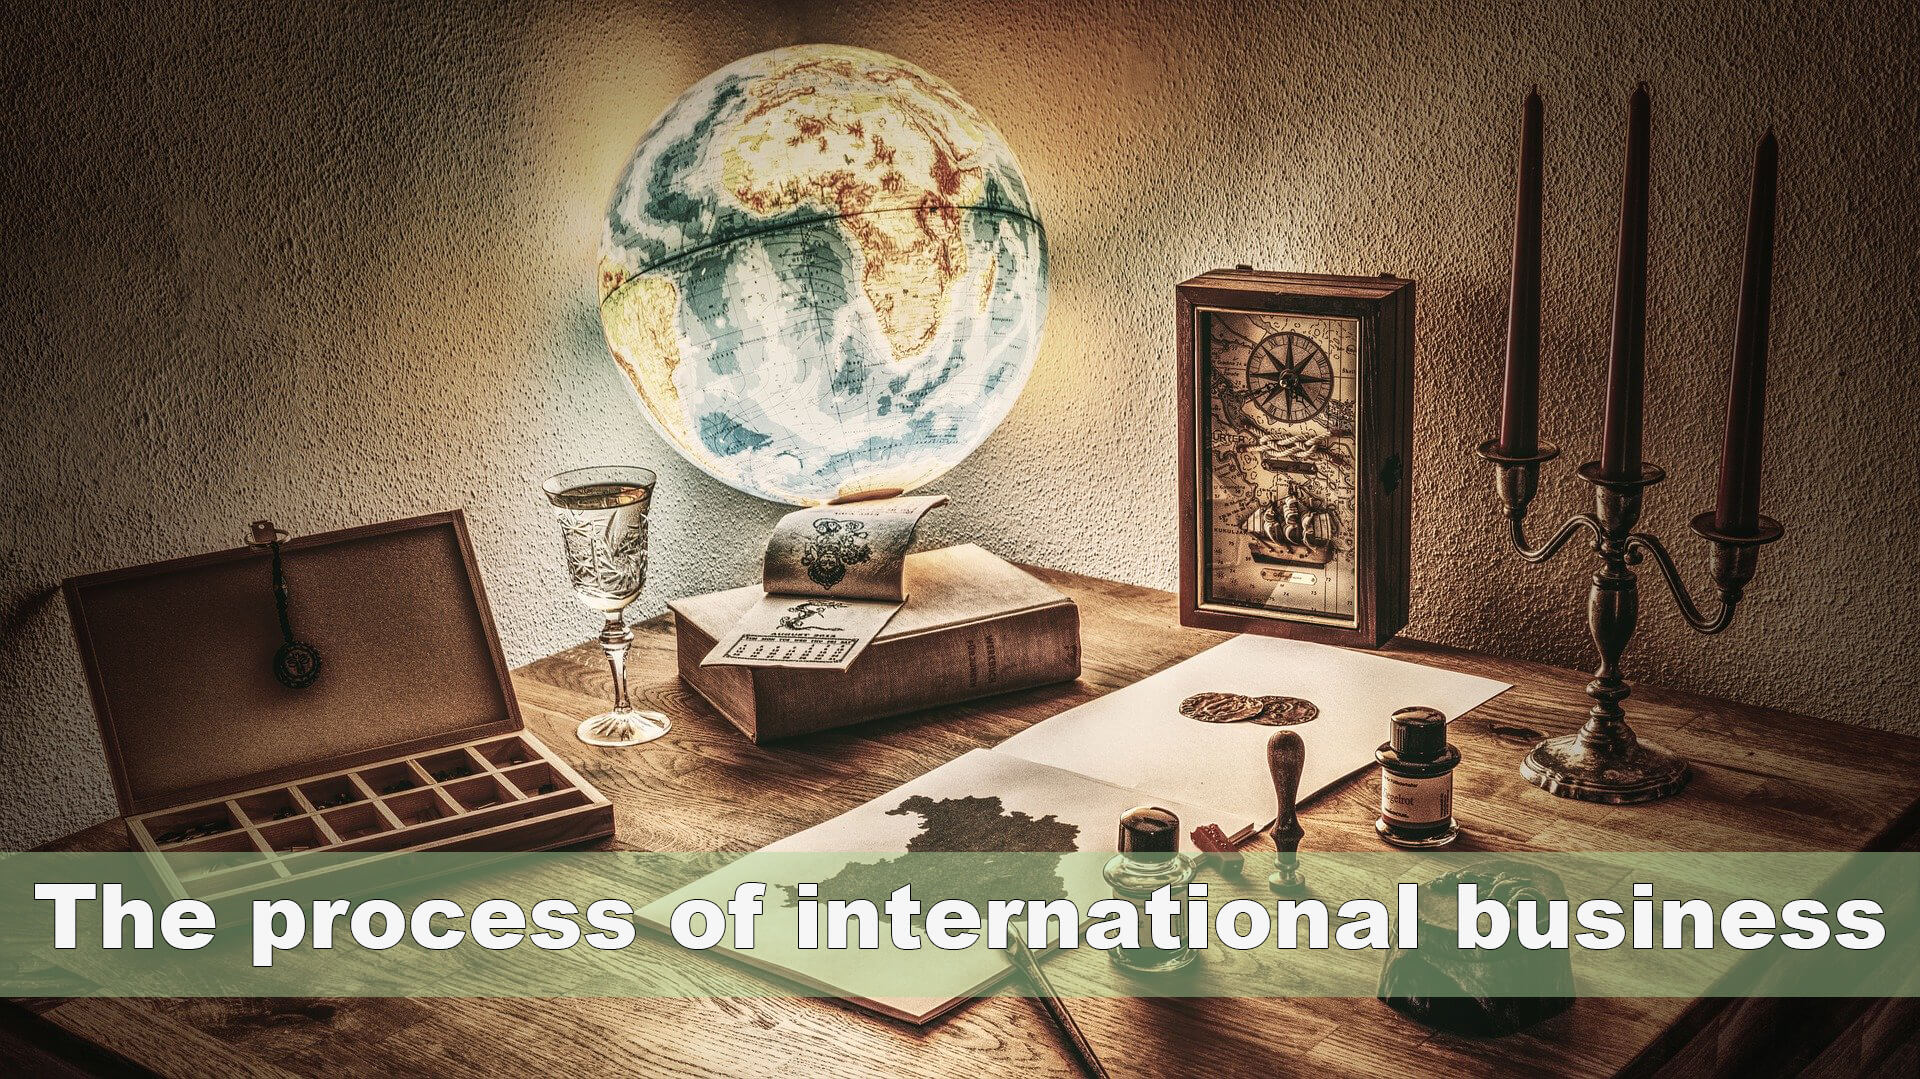 The process of international business (1)